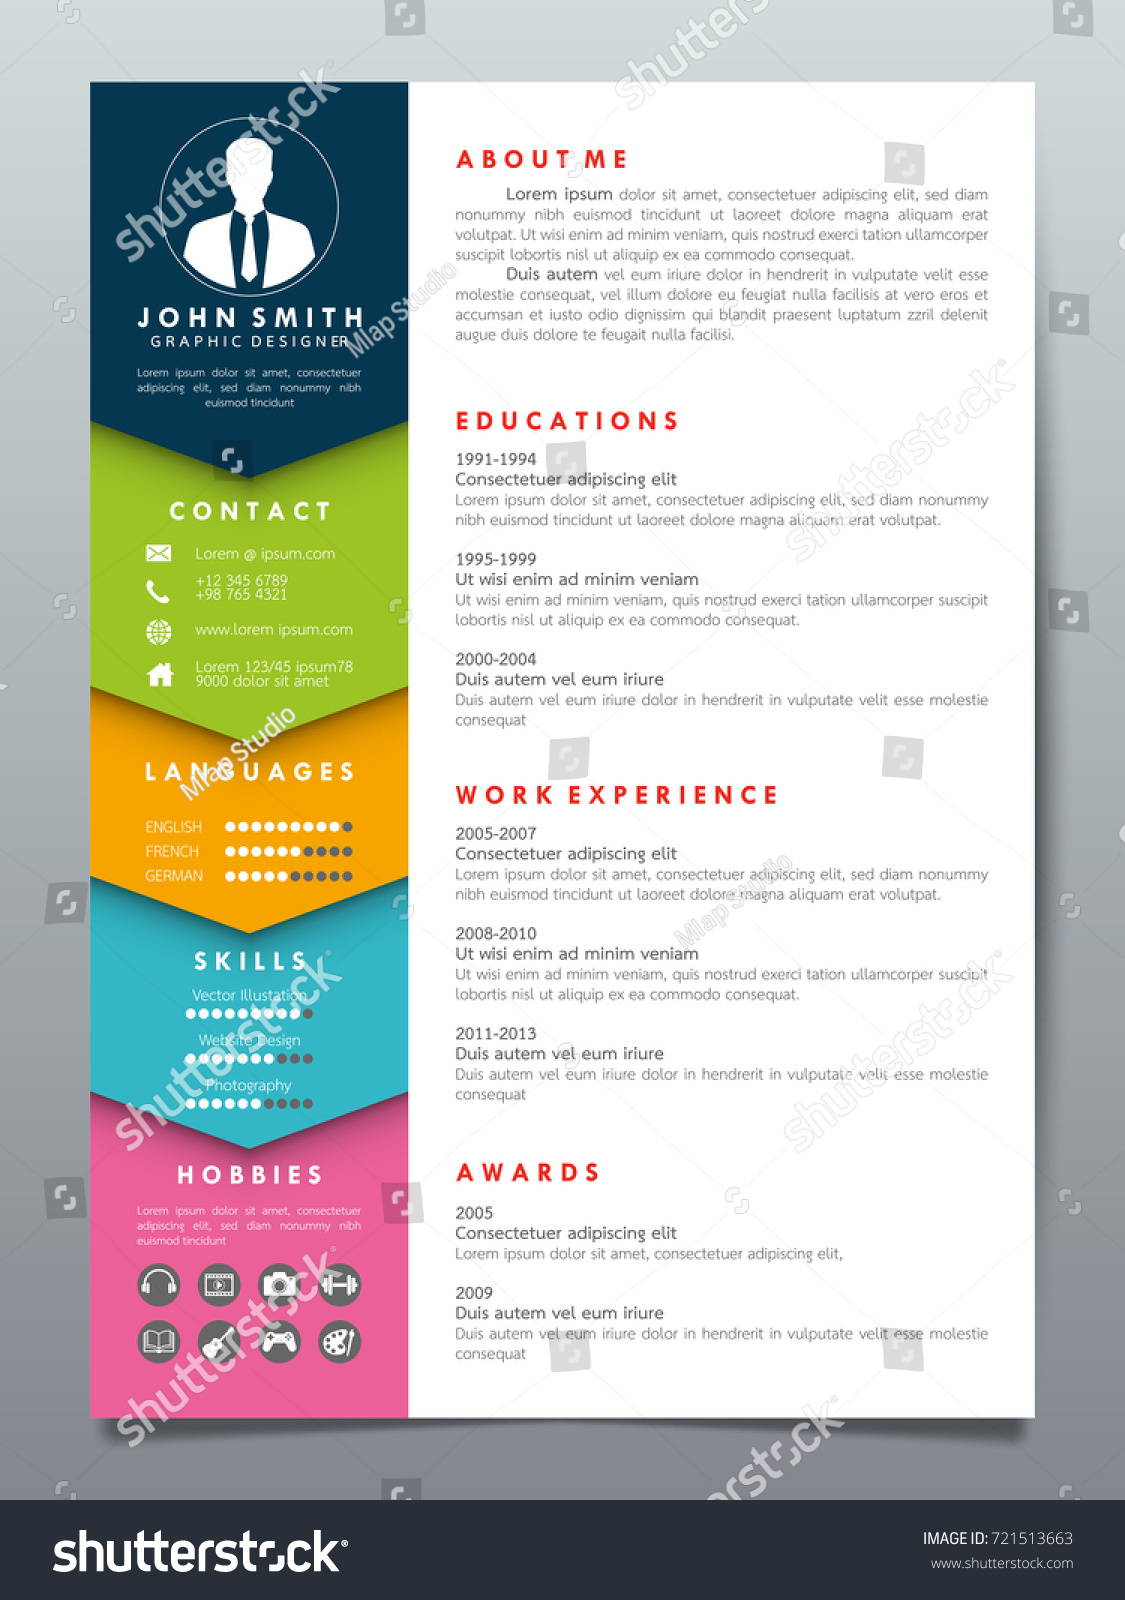 Resume Design Template Minimalist Cv Business Stock Vector